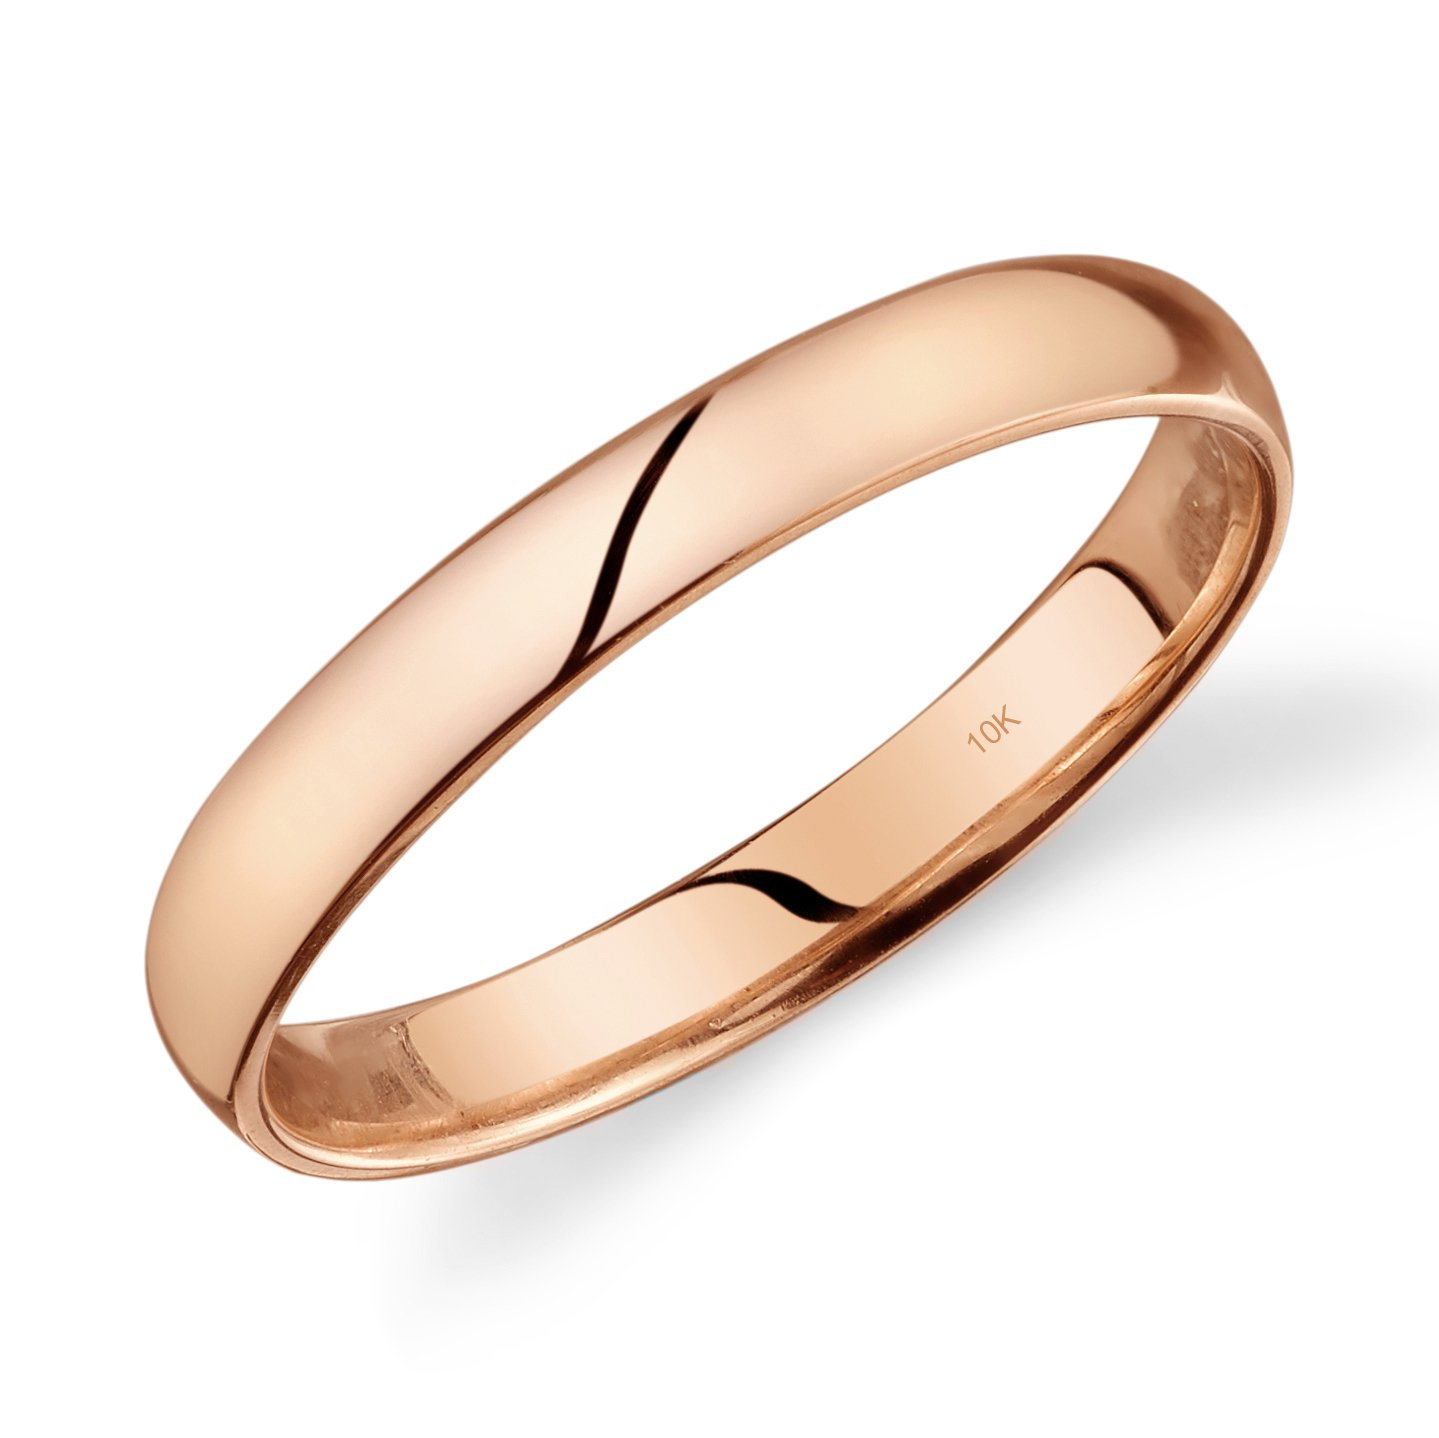 10k Yellow or White or Rose Gold Light Comfort Fit 3mm Wedding Band M035